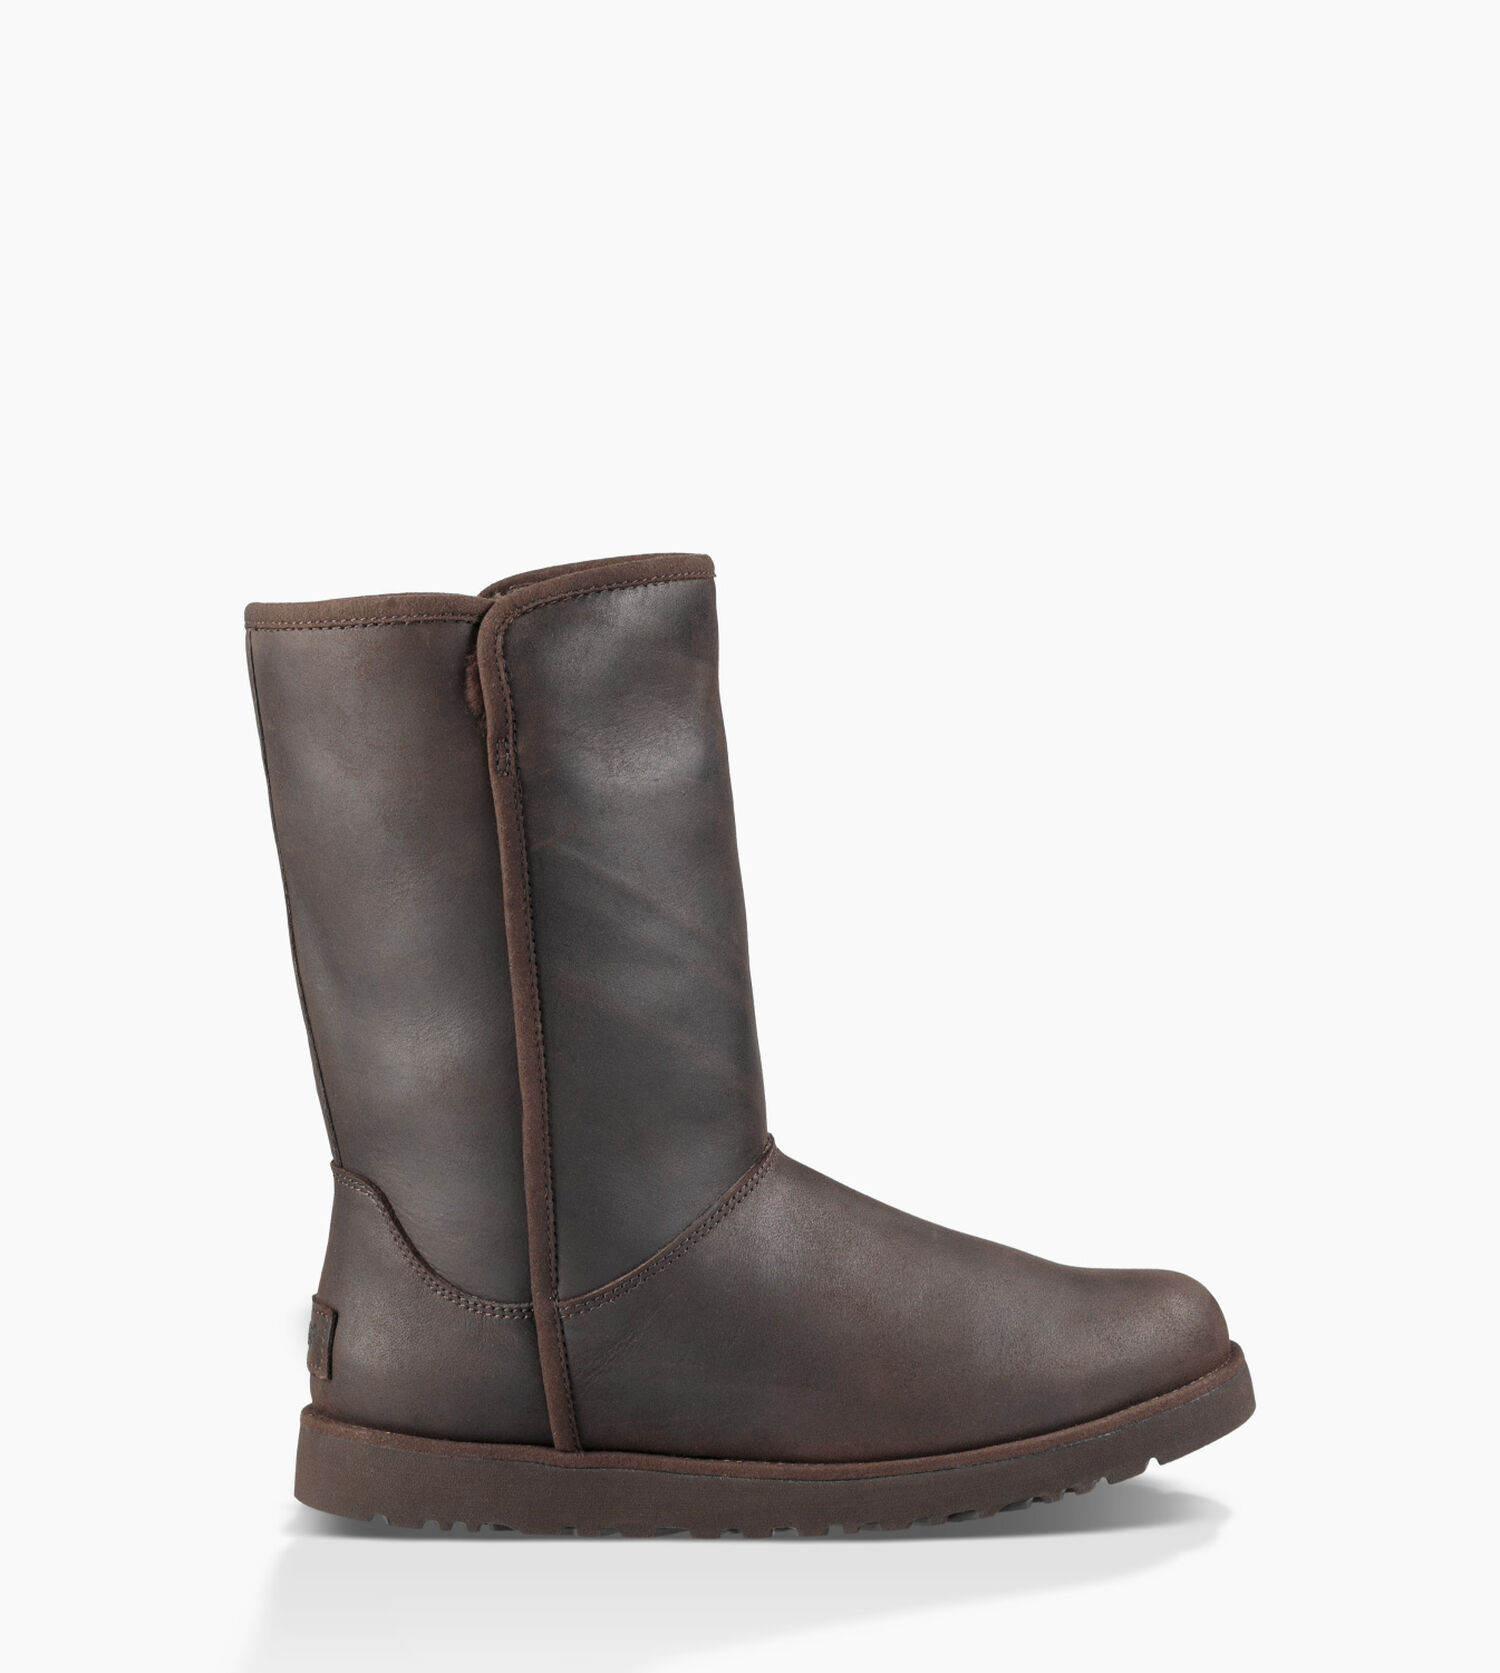 585e66c8997 Women's Share this product Michelle Leather